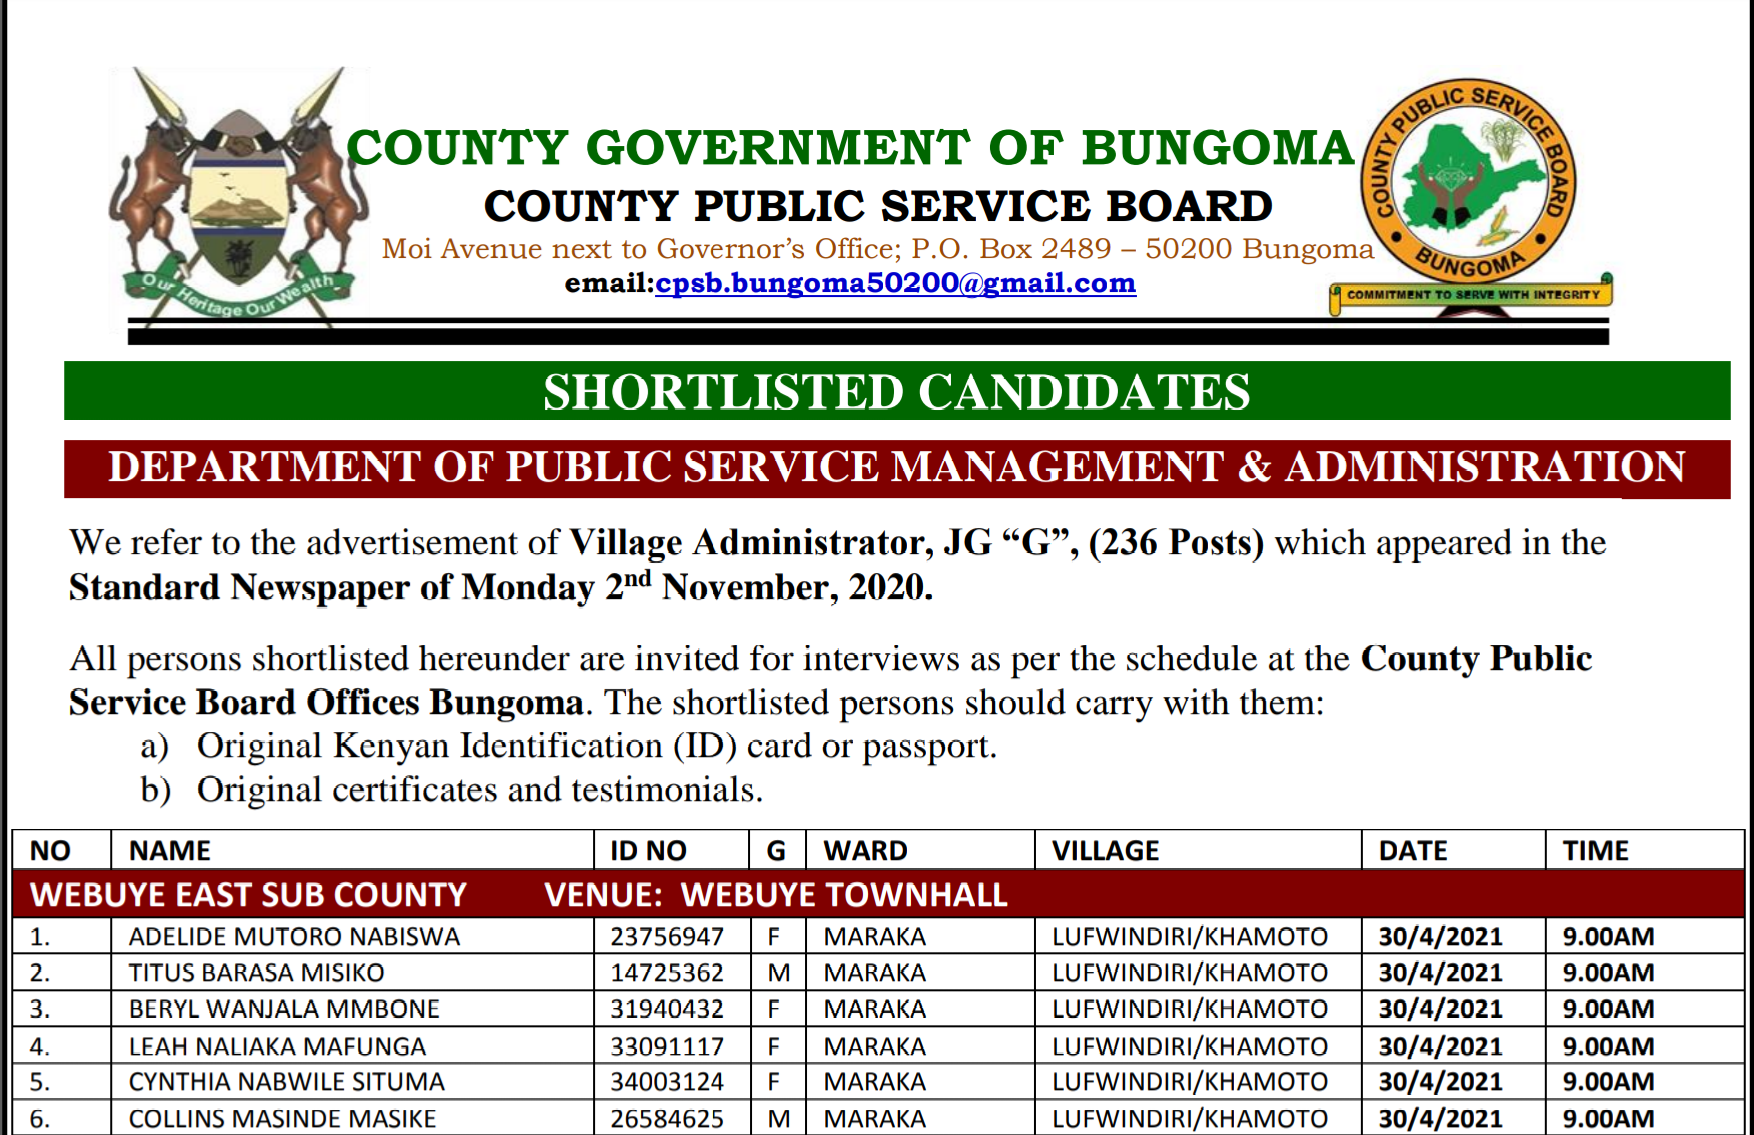 LIST OF SHORTLISTED CANDIDATES FOR THE POSITION OF VILLAGE ADMINISTRATORS